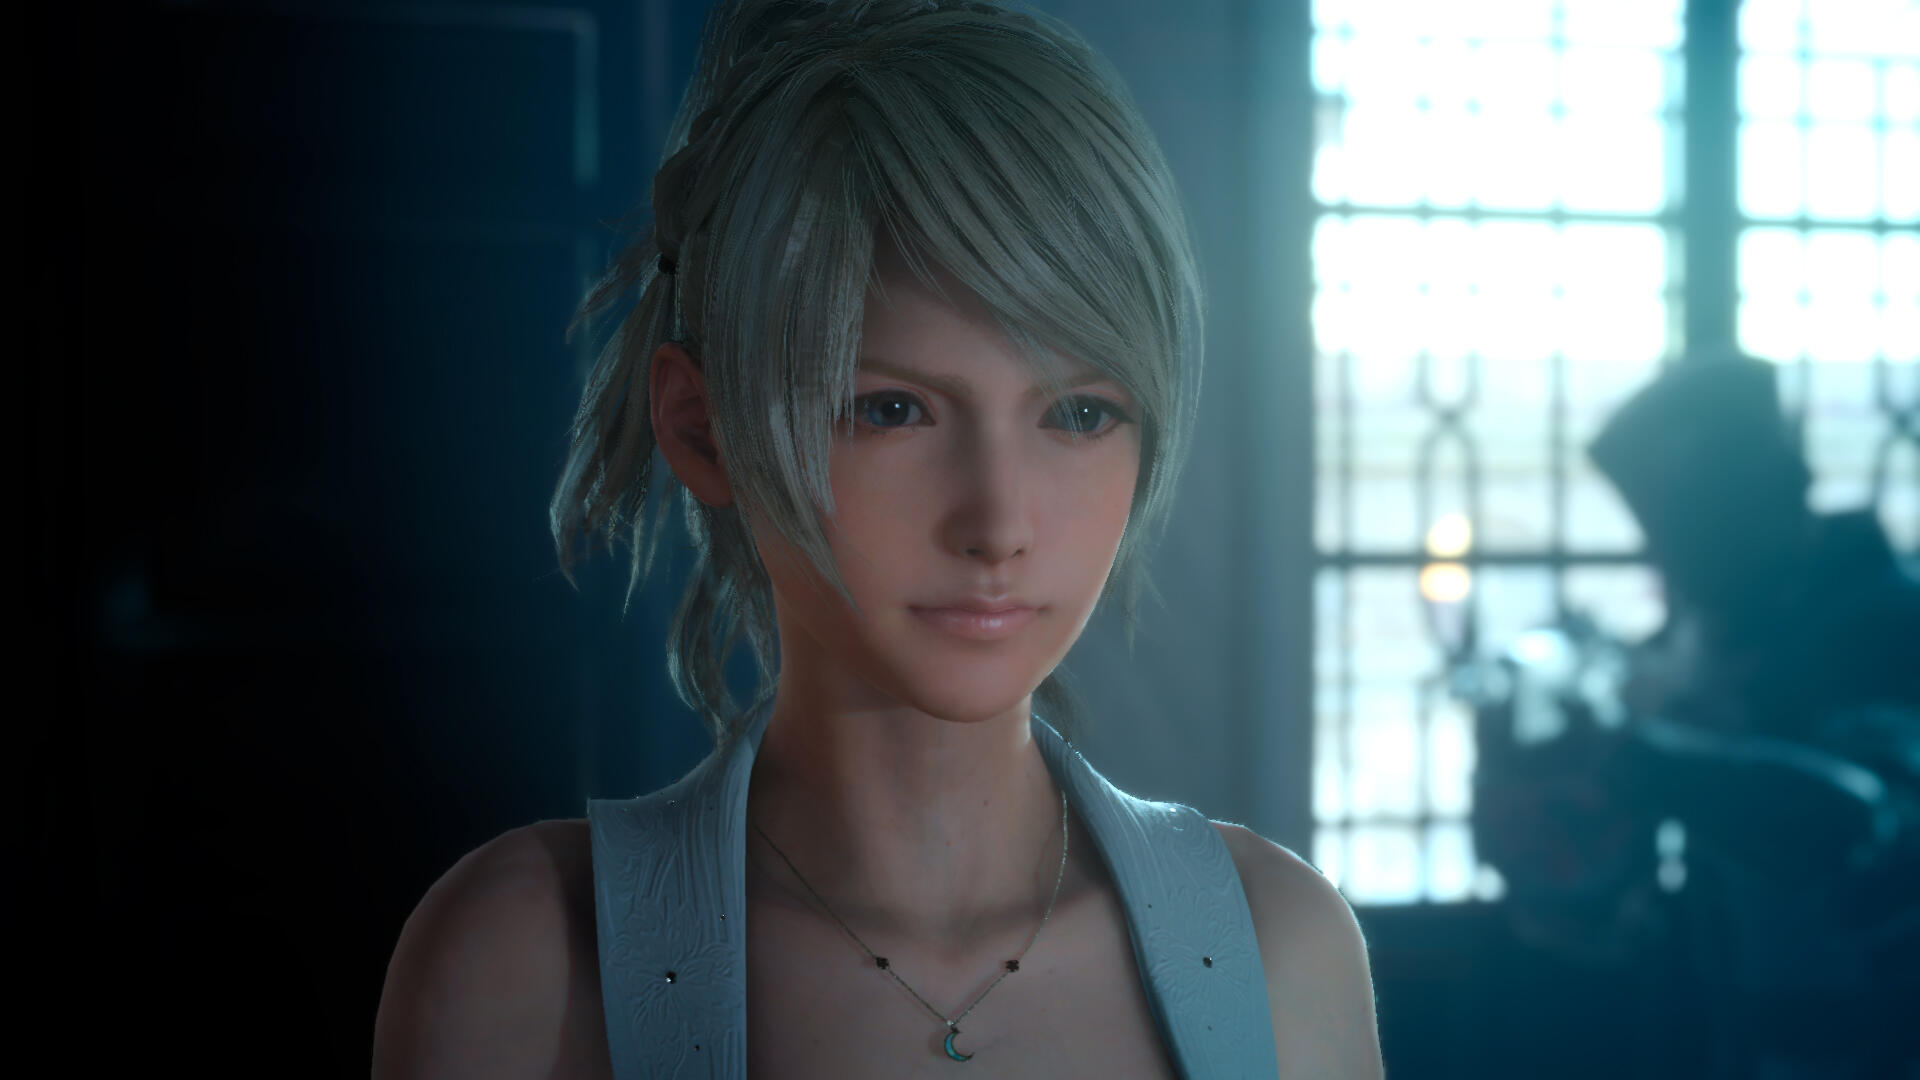 Final Fantasy XV Director Hajime Tabata Resigns from Square Enix, Several FFXV DLC Episodes Canceled